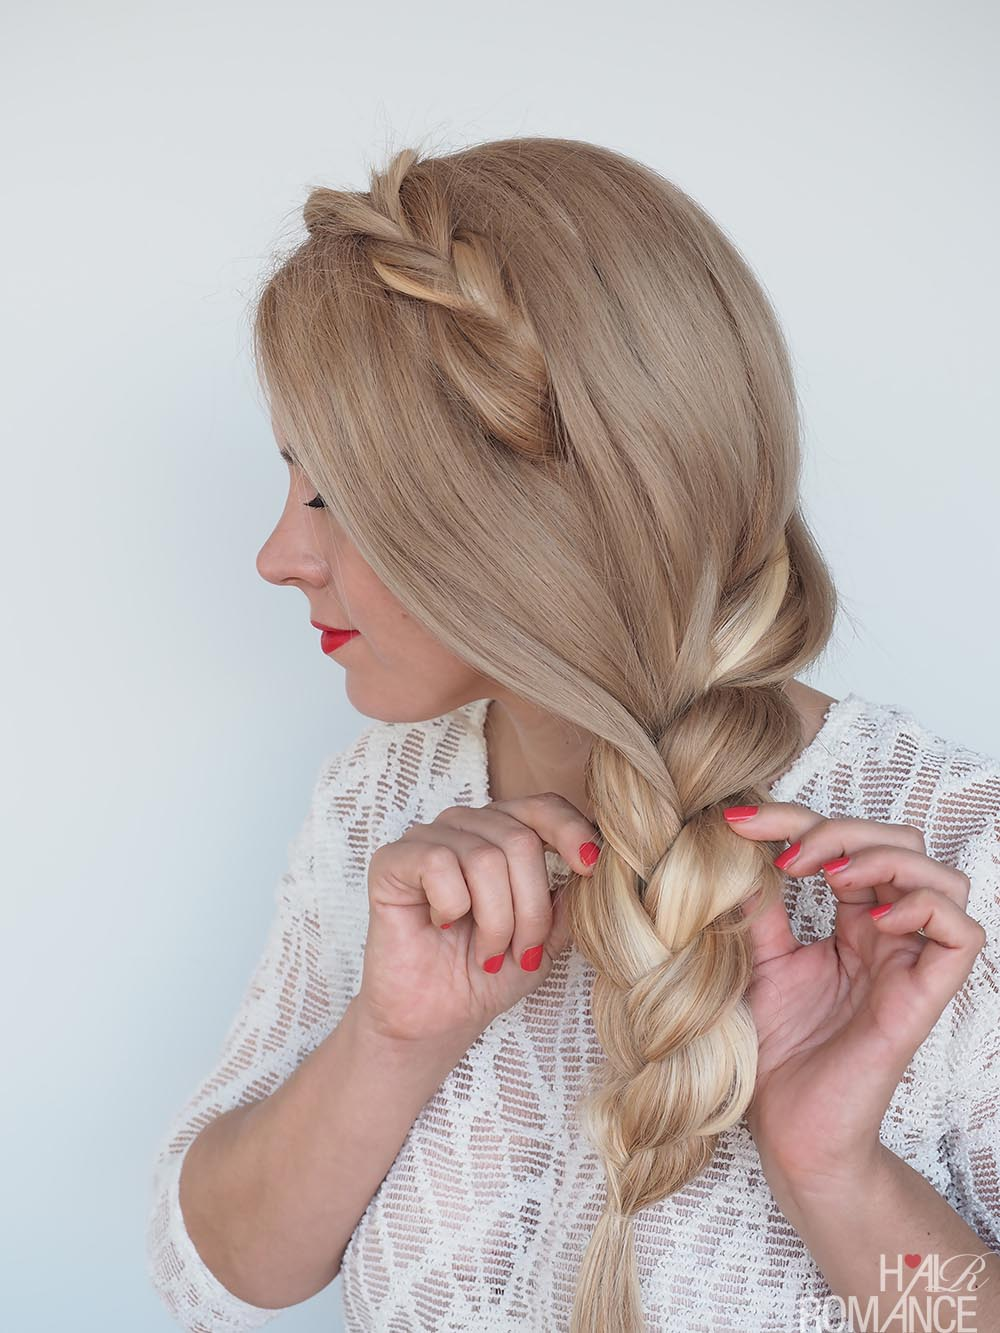 Hair Romance - Side braid tutorial with hair extensions